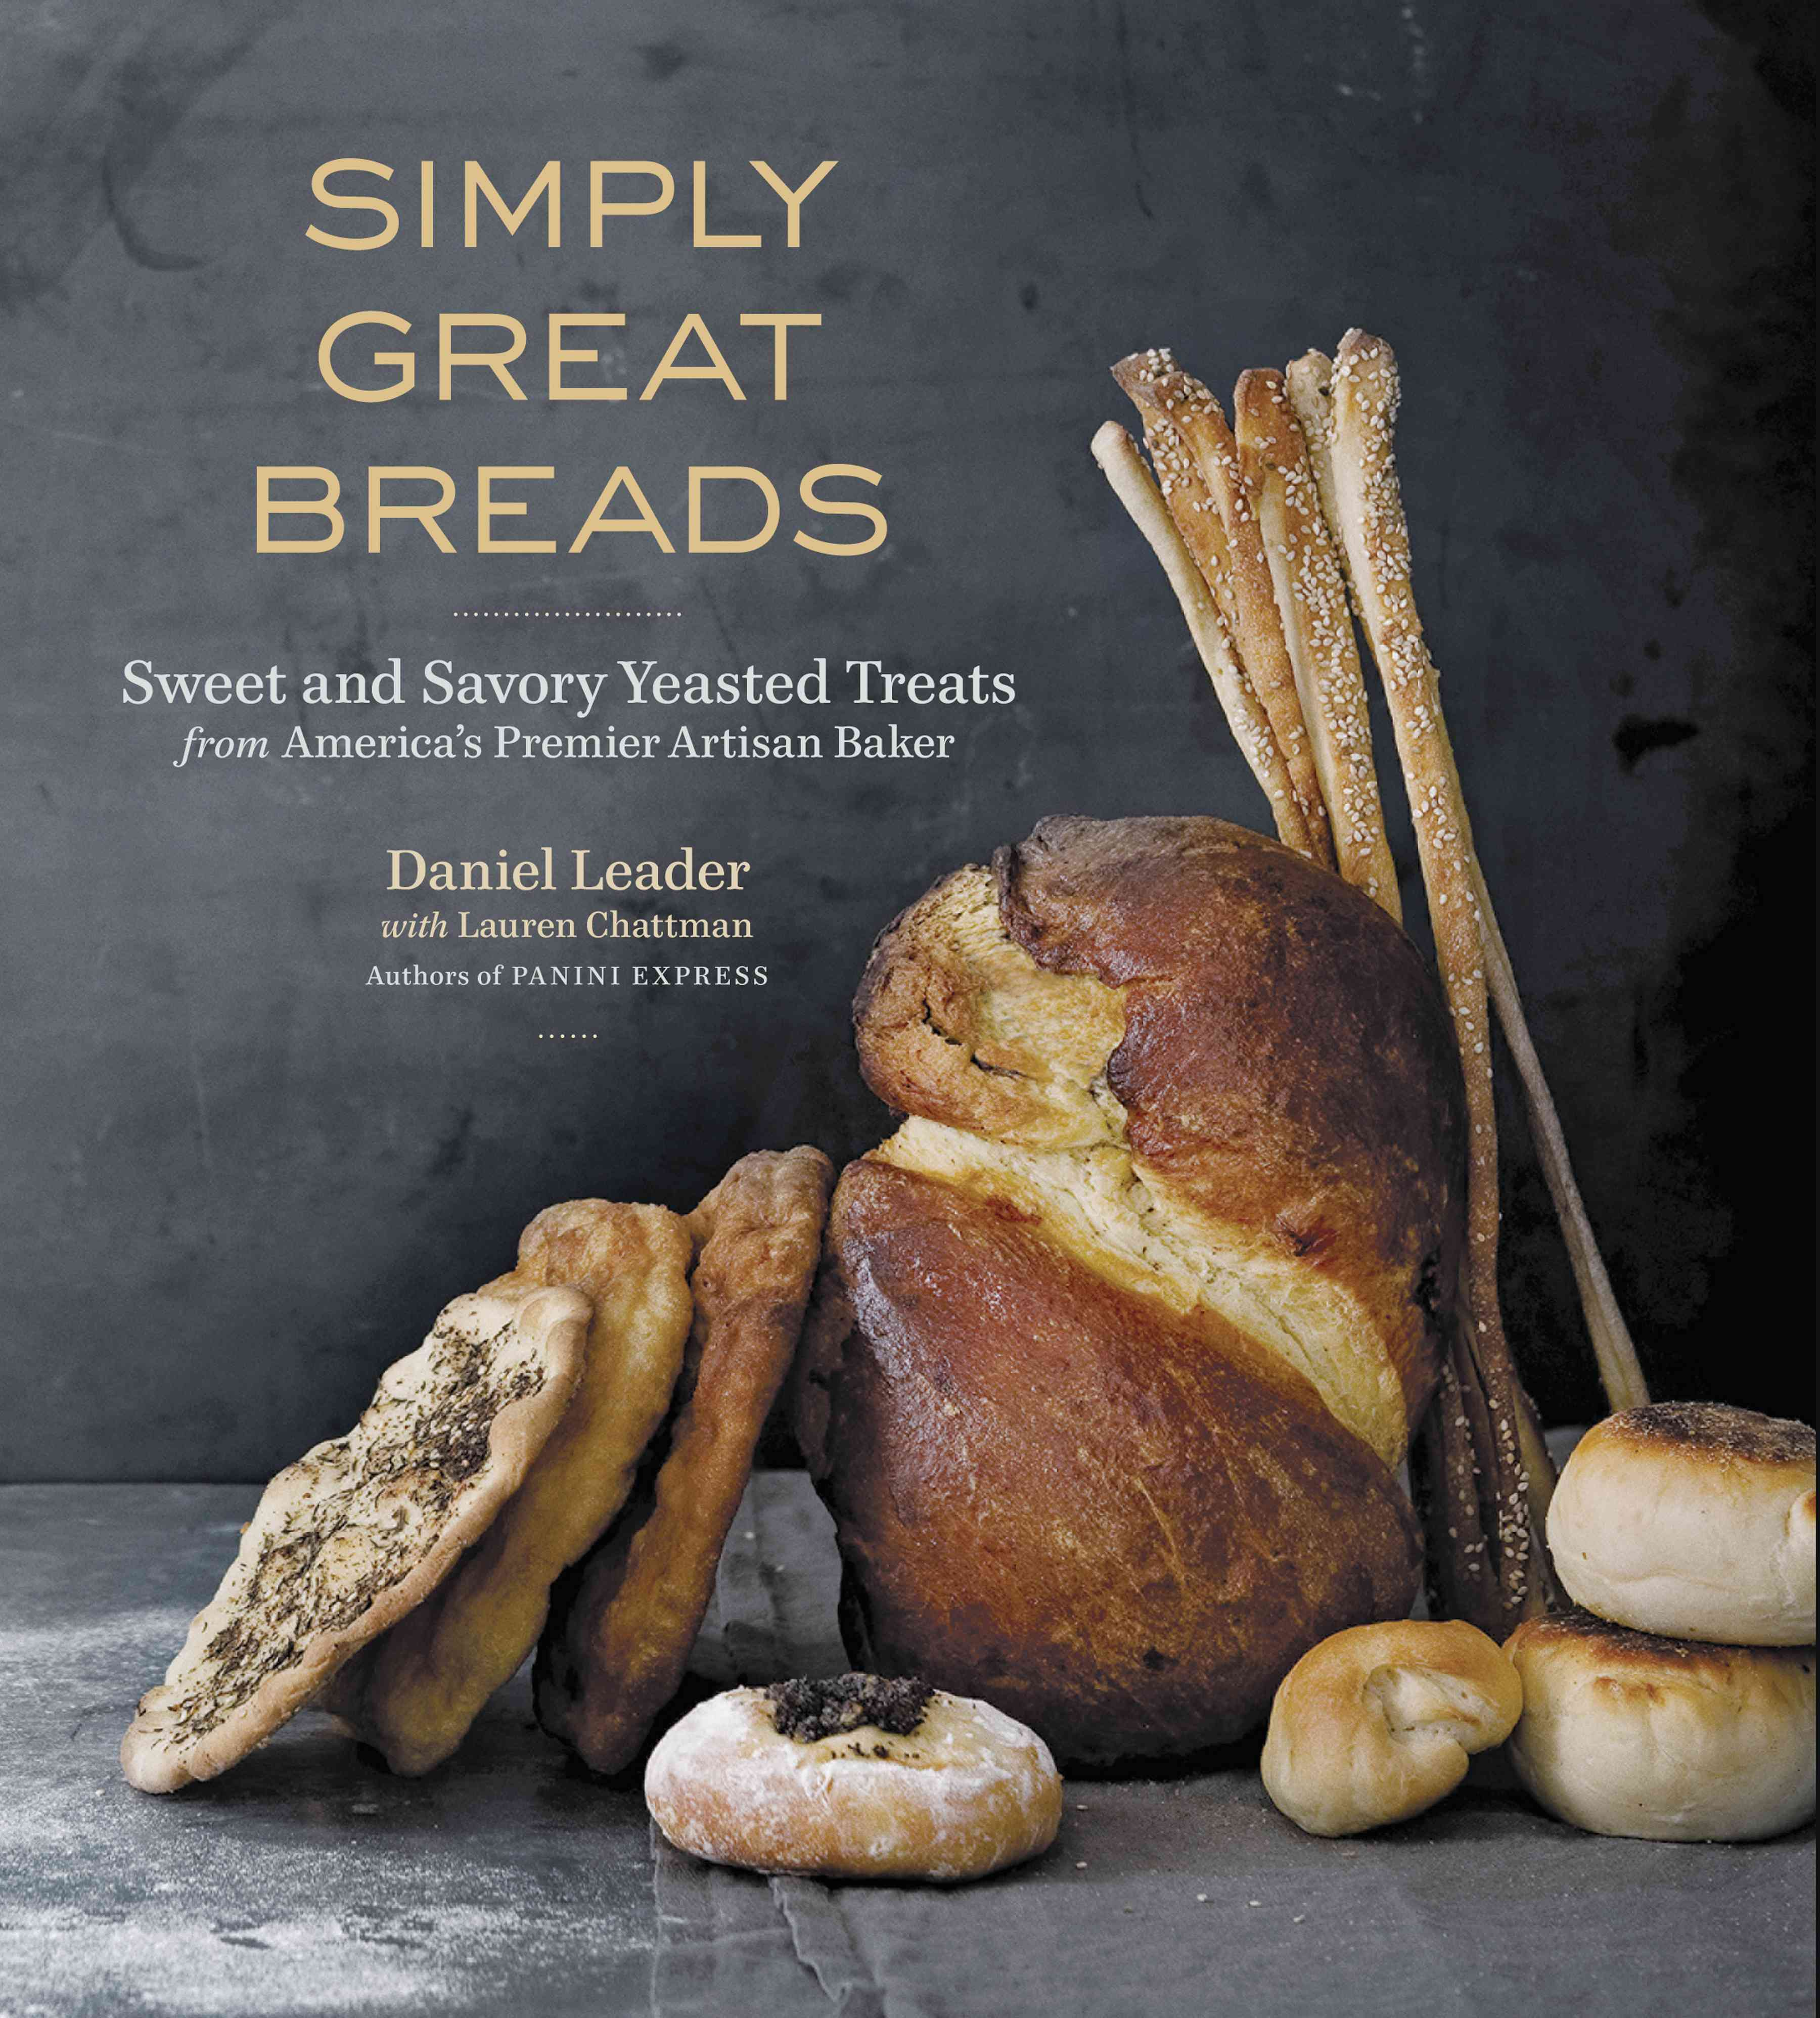 Simply Great Breads: Sweet and Savory Yeasted Treats from America's Premier Artisan Baker (Hardcover)